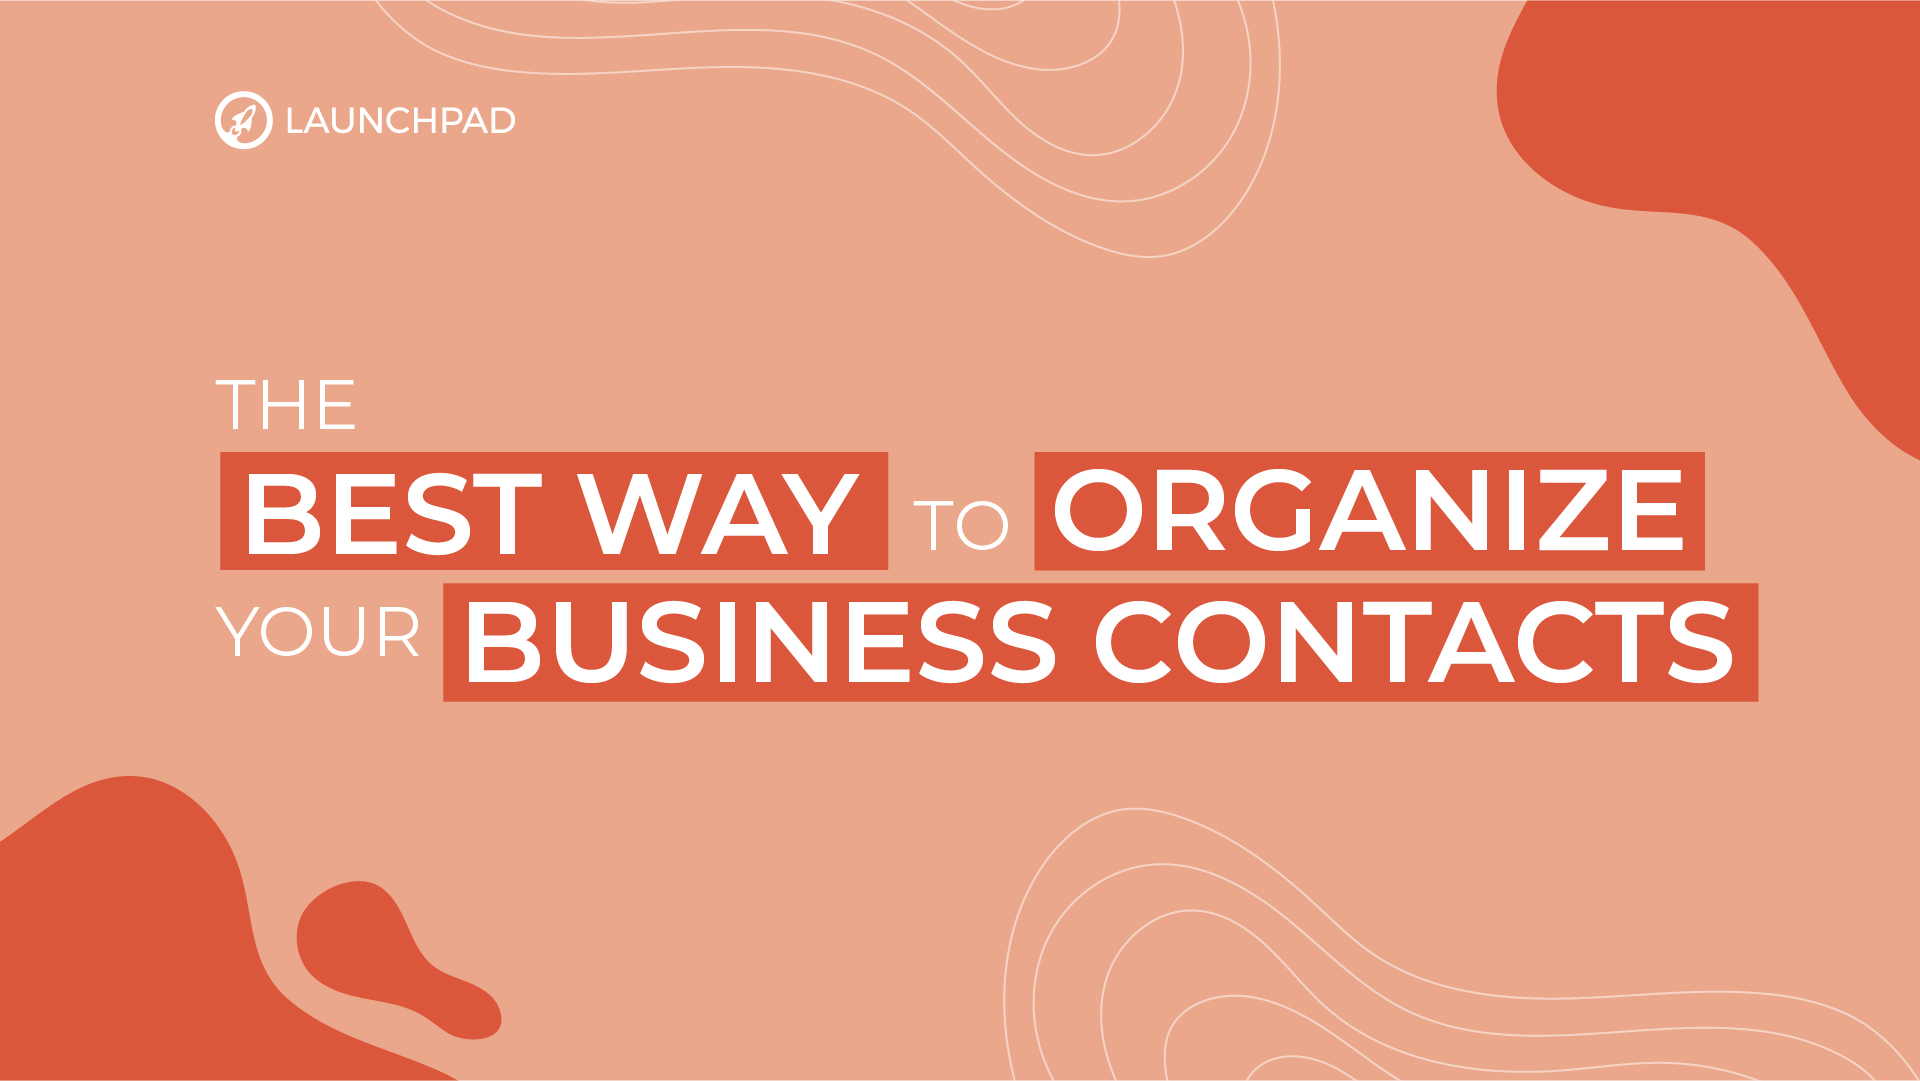 Simply the best way to organize your business contacts